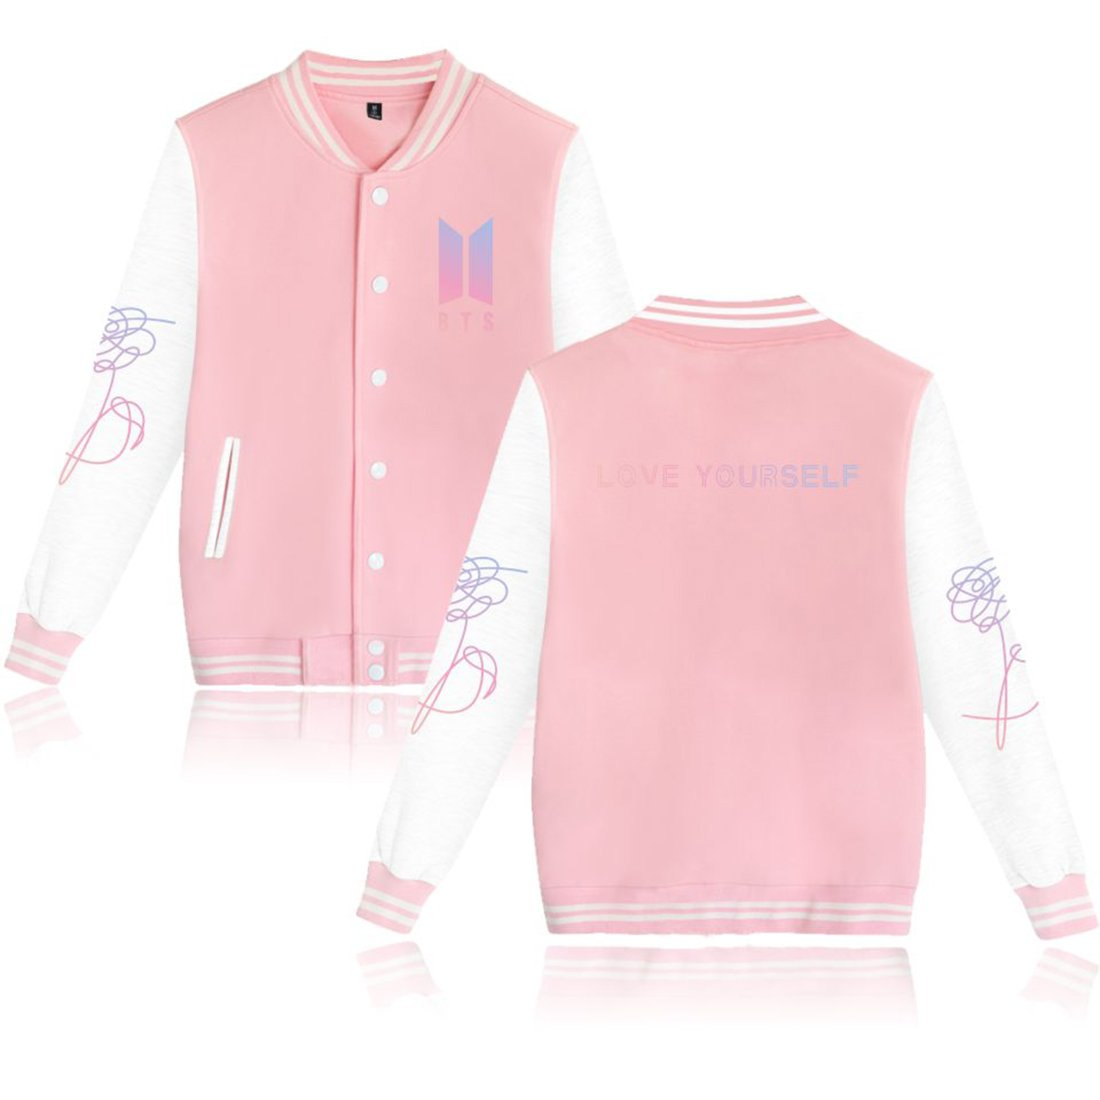 EmilyLe Kpop BTS Baseball Jacket Uniform Fans Cheer Unisex Sweater Coat